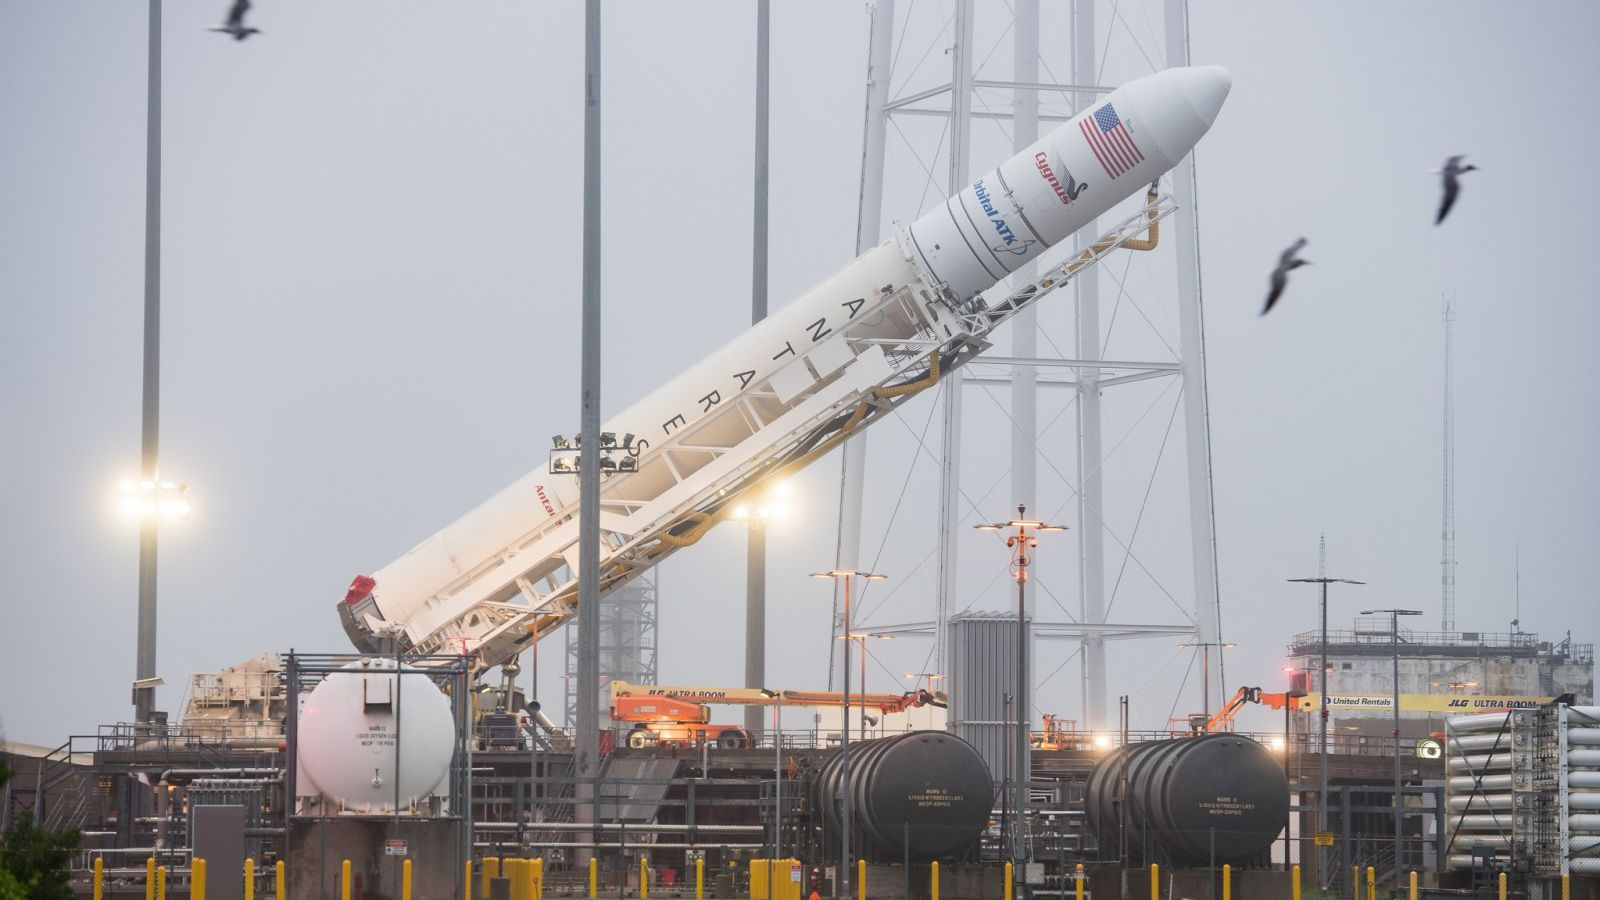 Orbital ATK's Antares rocket with the OA-9 Cygnus encapsulated on top is raised to the vertical position in advance of its launch. Photo Credit: Aubrey Gemignani / NASA